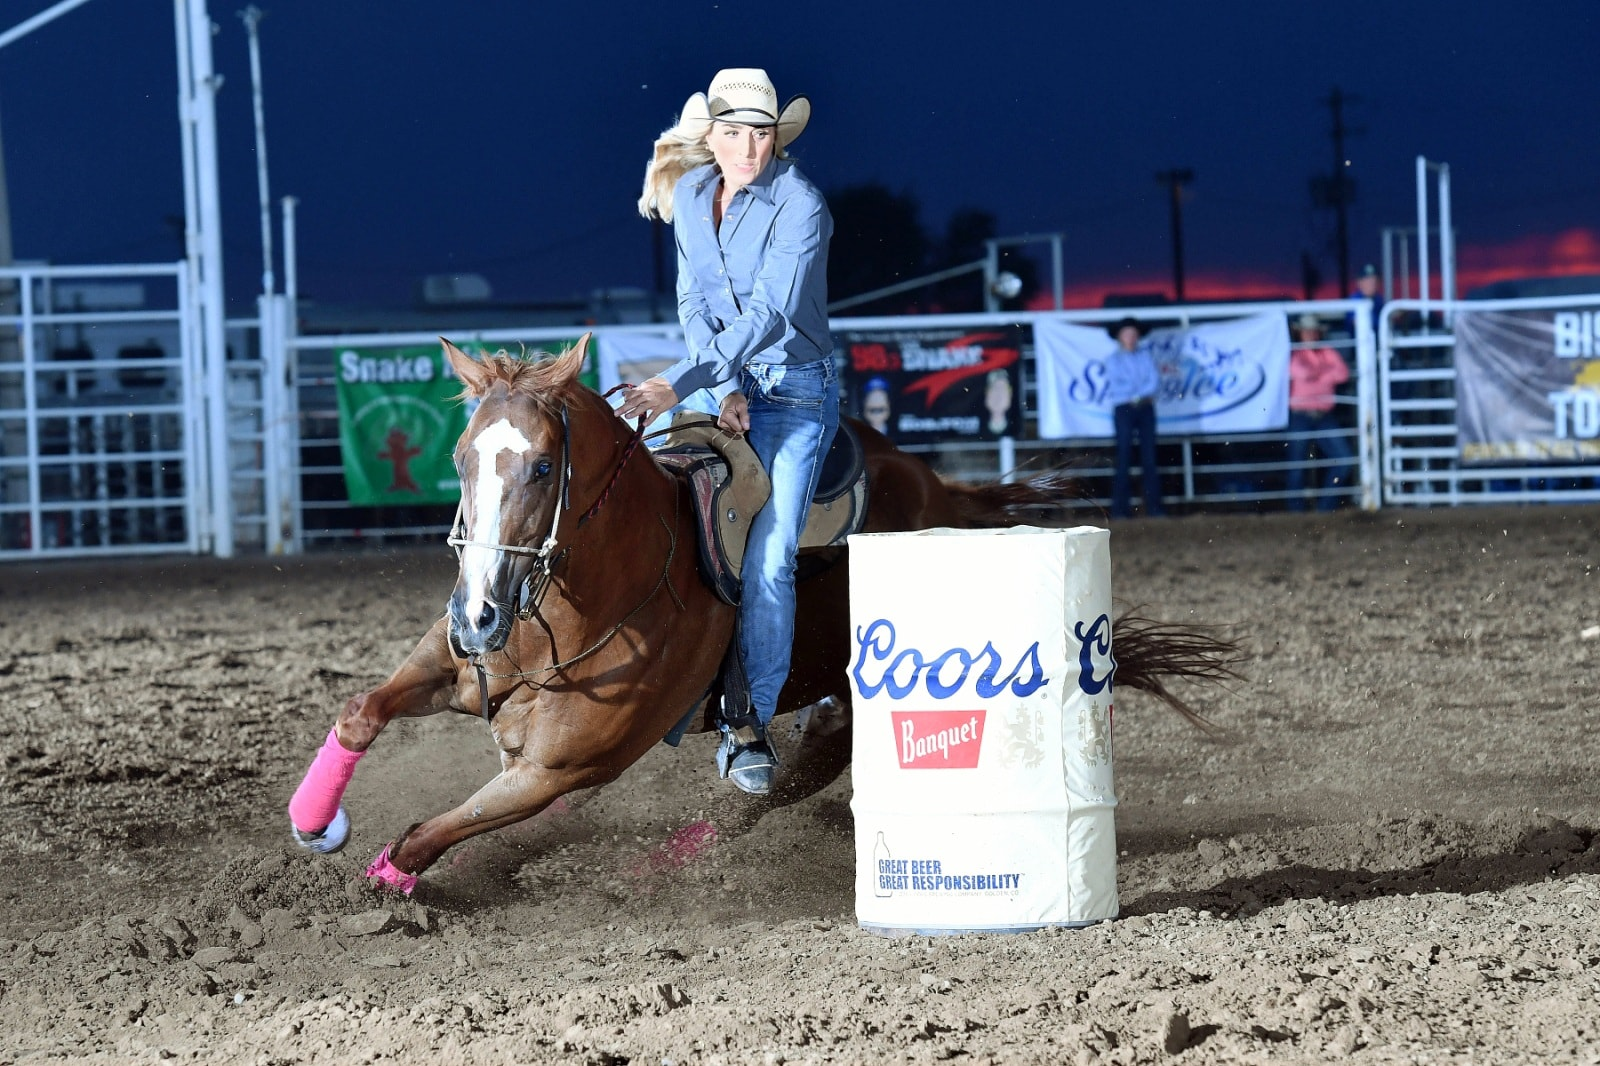 Congratulations to Tiany Schuster and Show Mance on their new arena record at the PRCA Rodeo in Jerome, ID 16.97